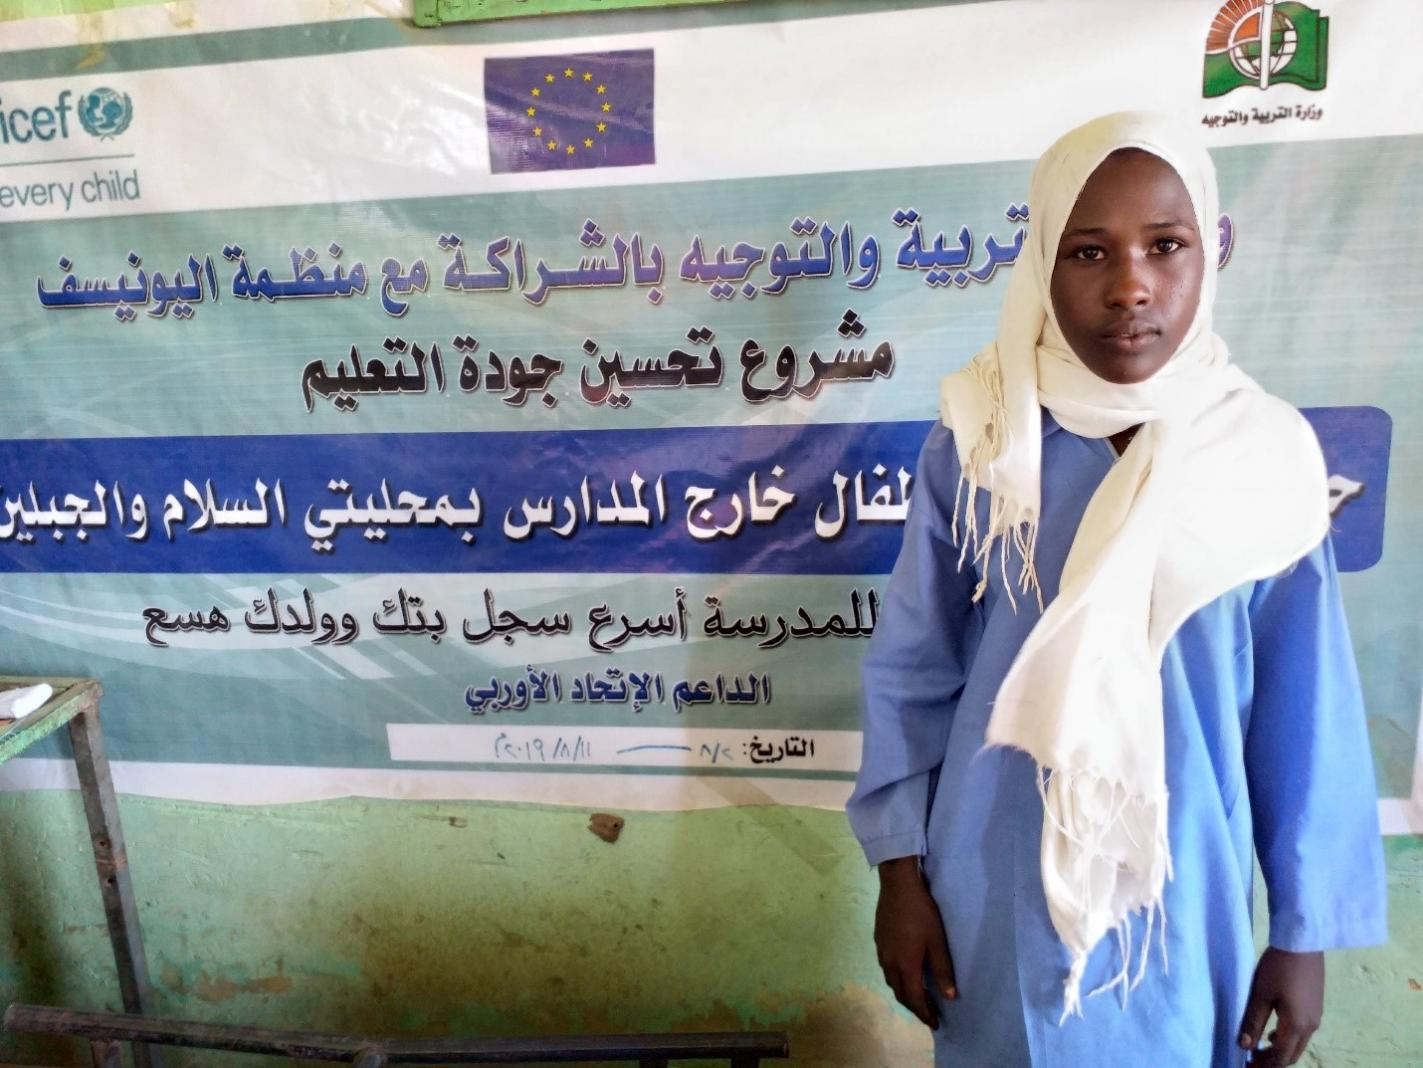 An orphan standing against child marriage